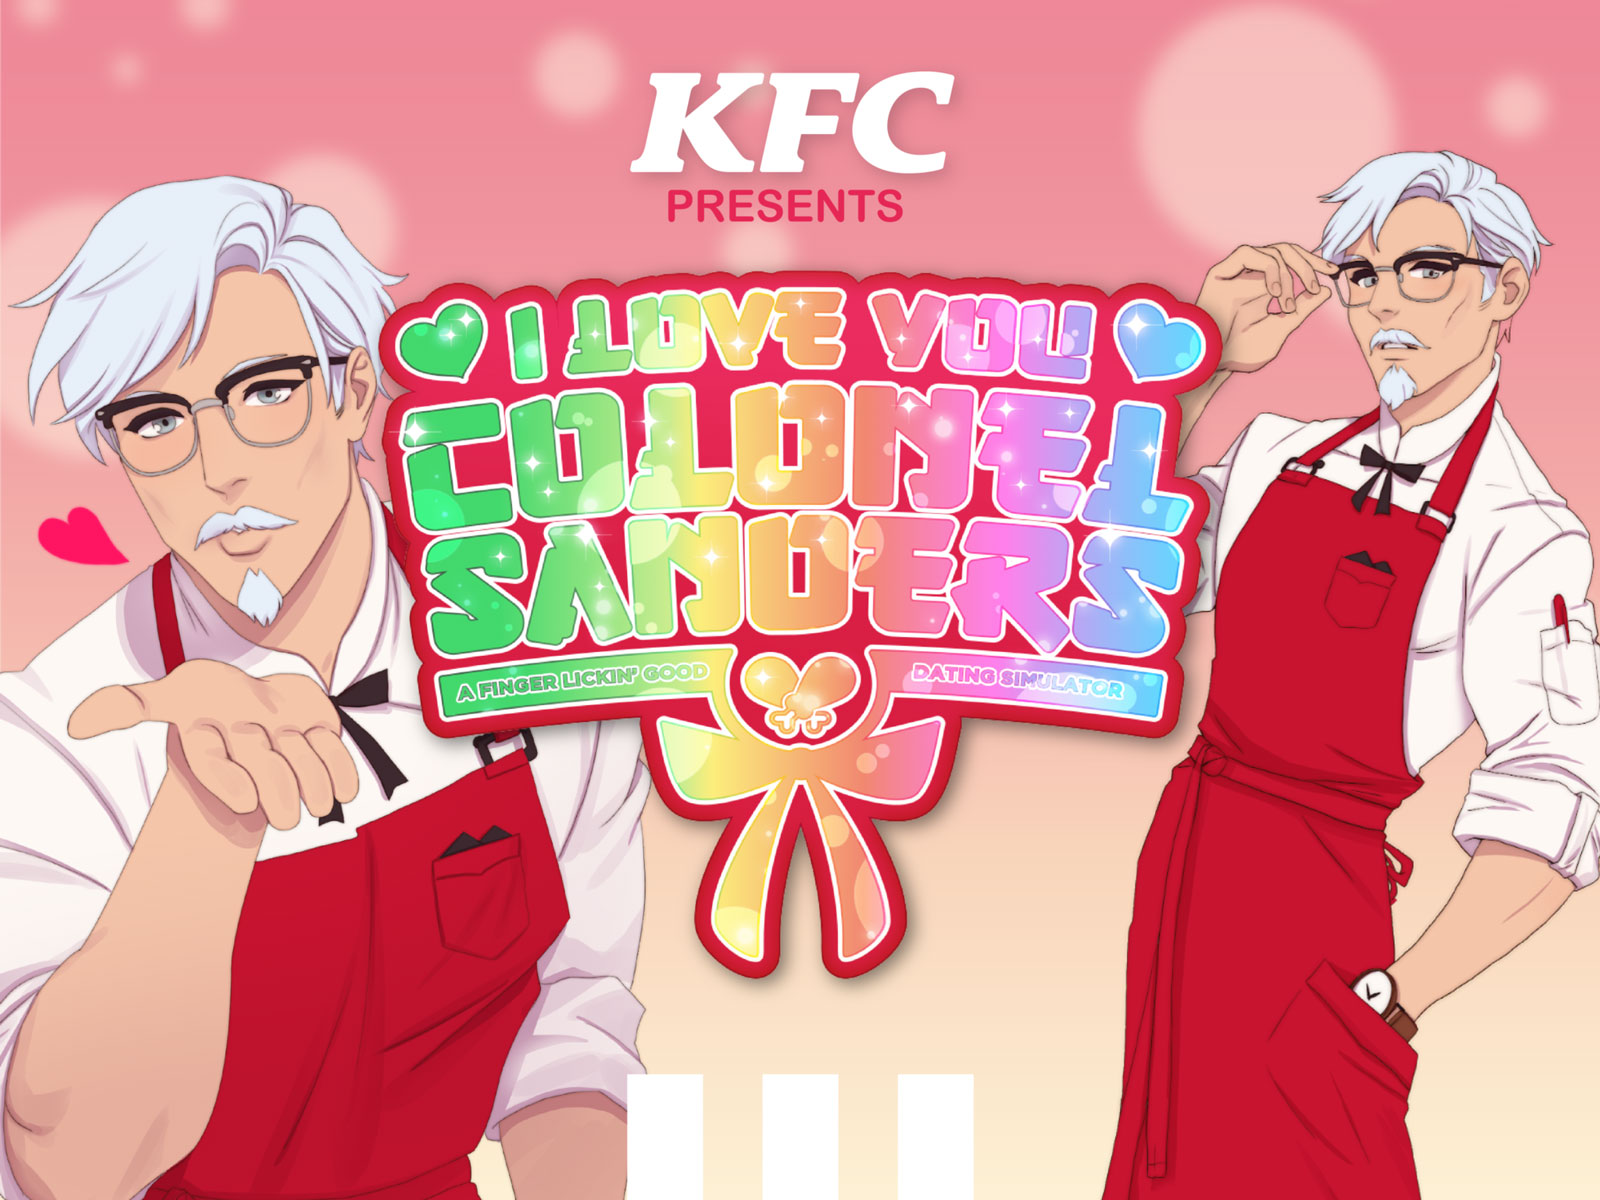 KFC's New Video Game Lets You Date Colonel Sanders